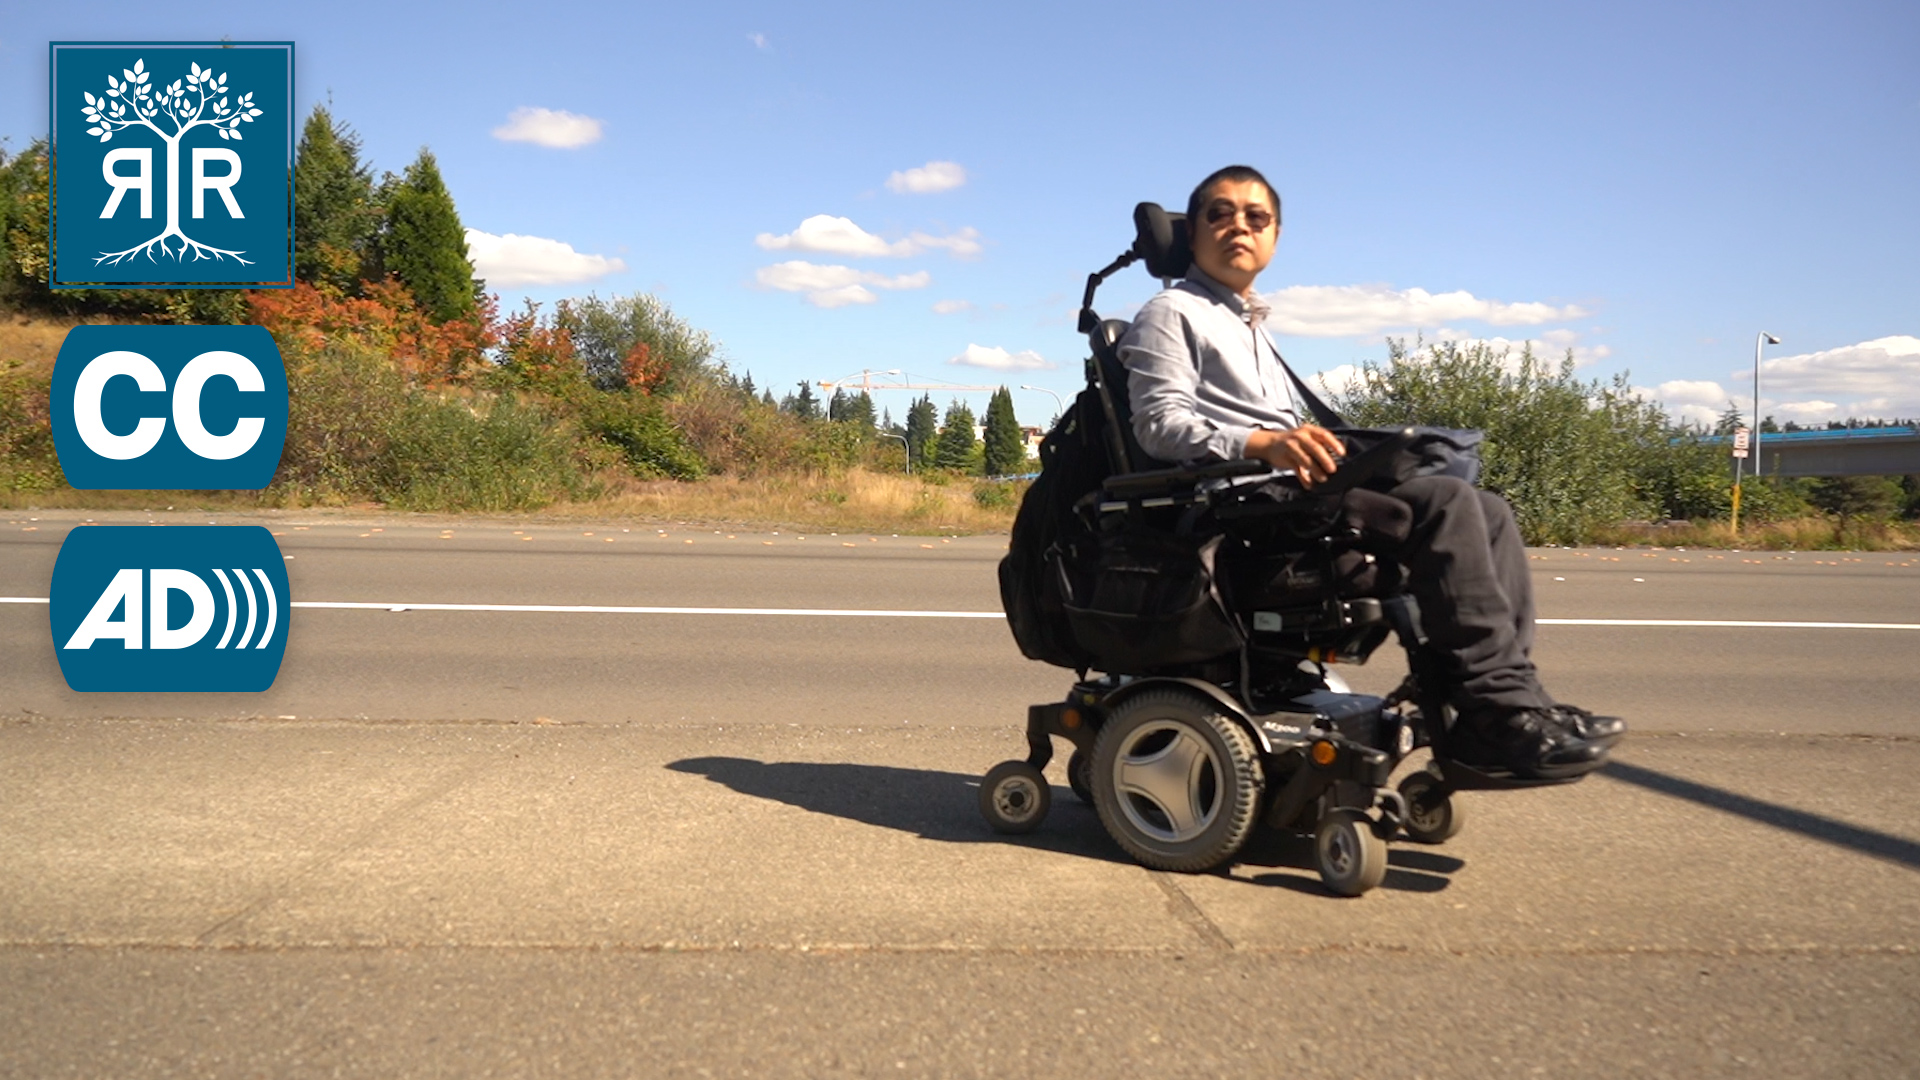 Image of Dixin in their wheelchair. They are positioned on the highway.